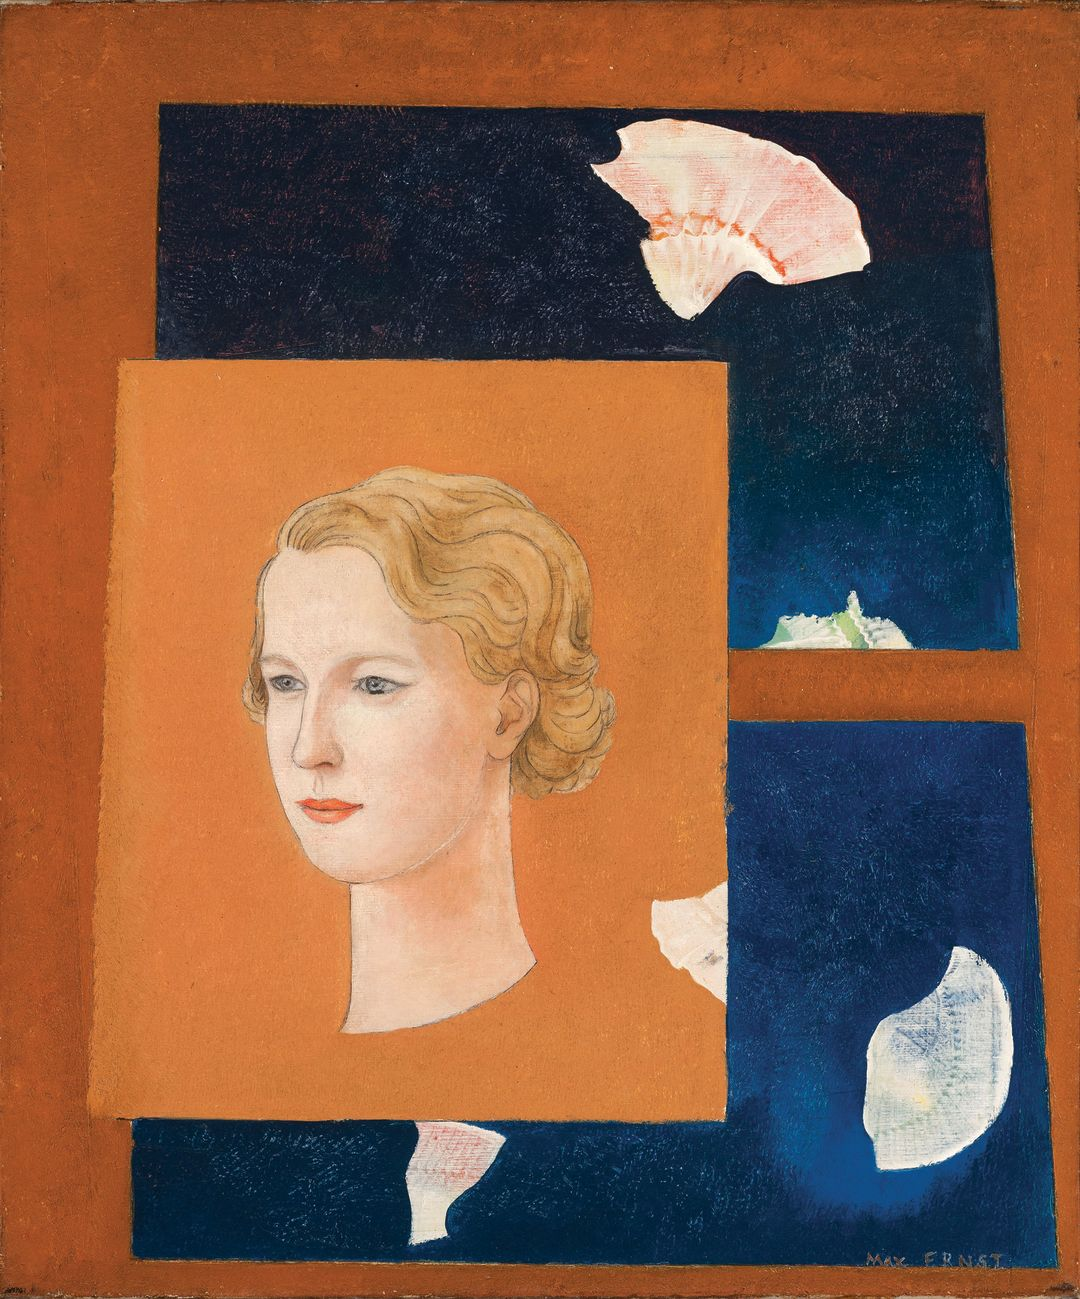 Dominique de Menil portrait by Max Ernst